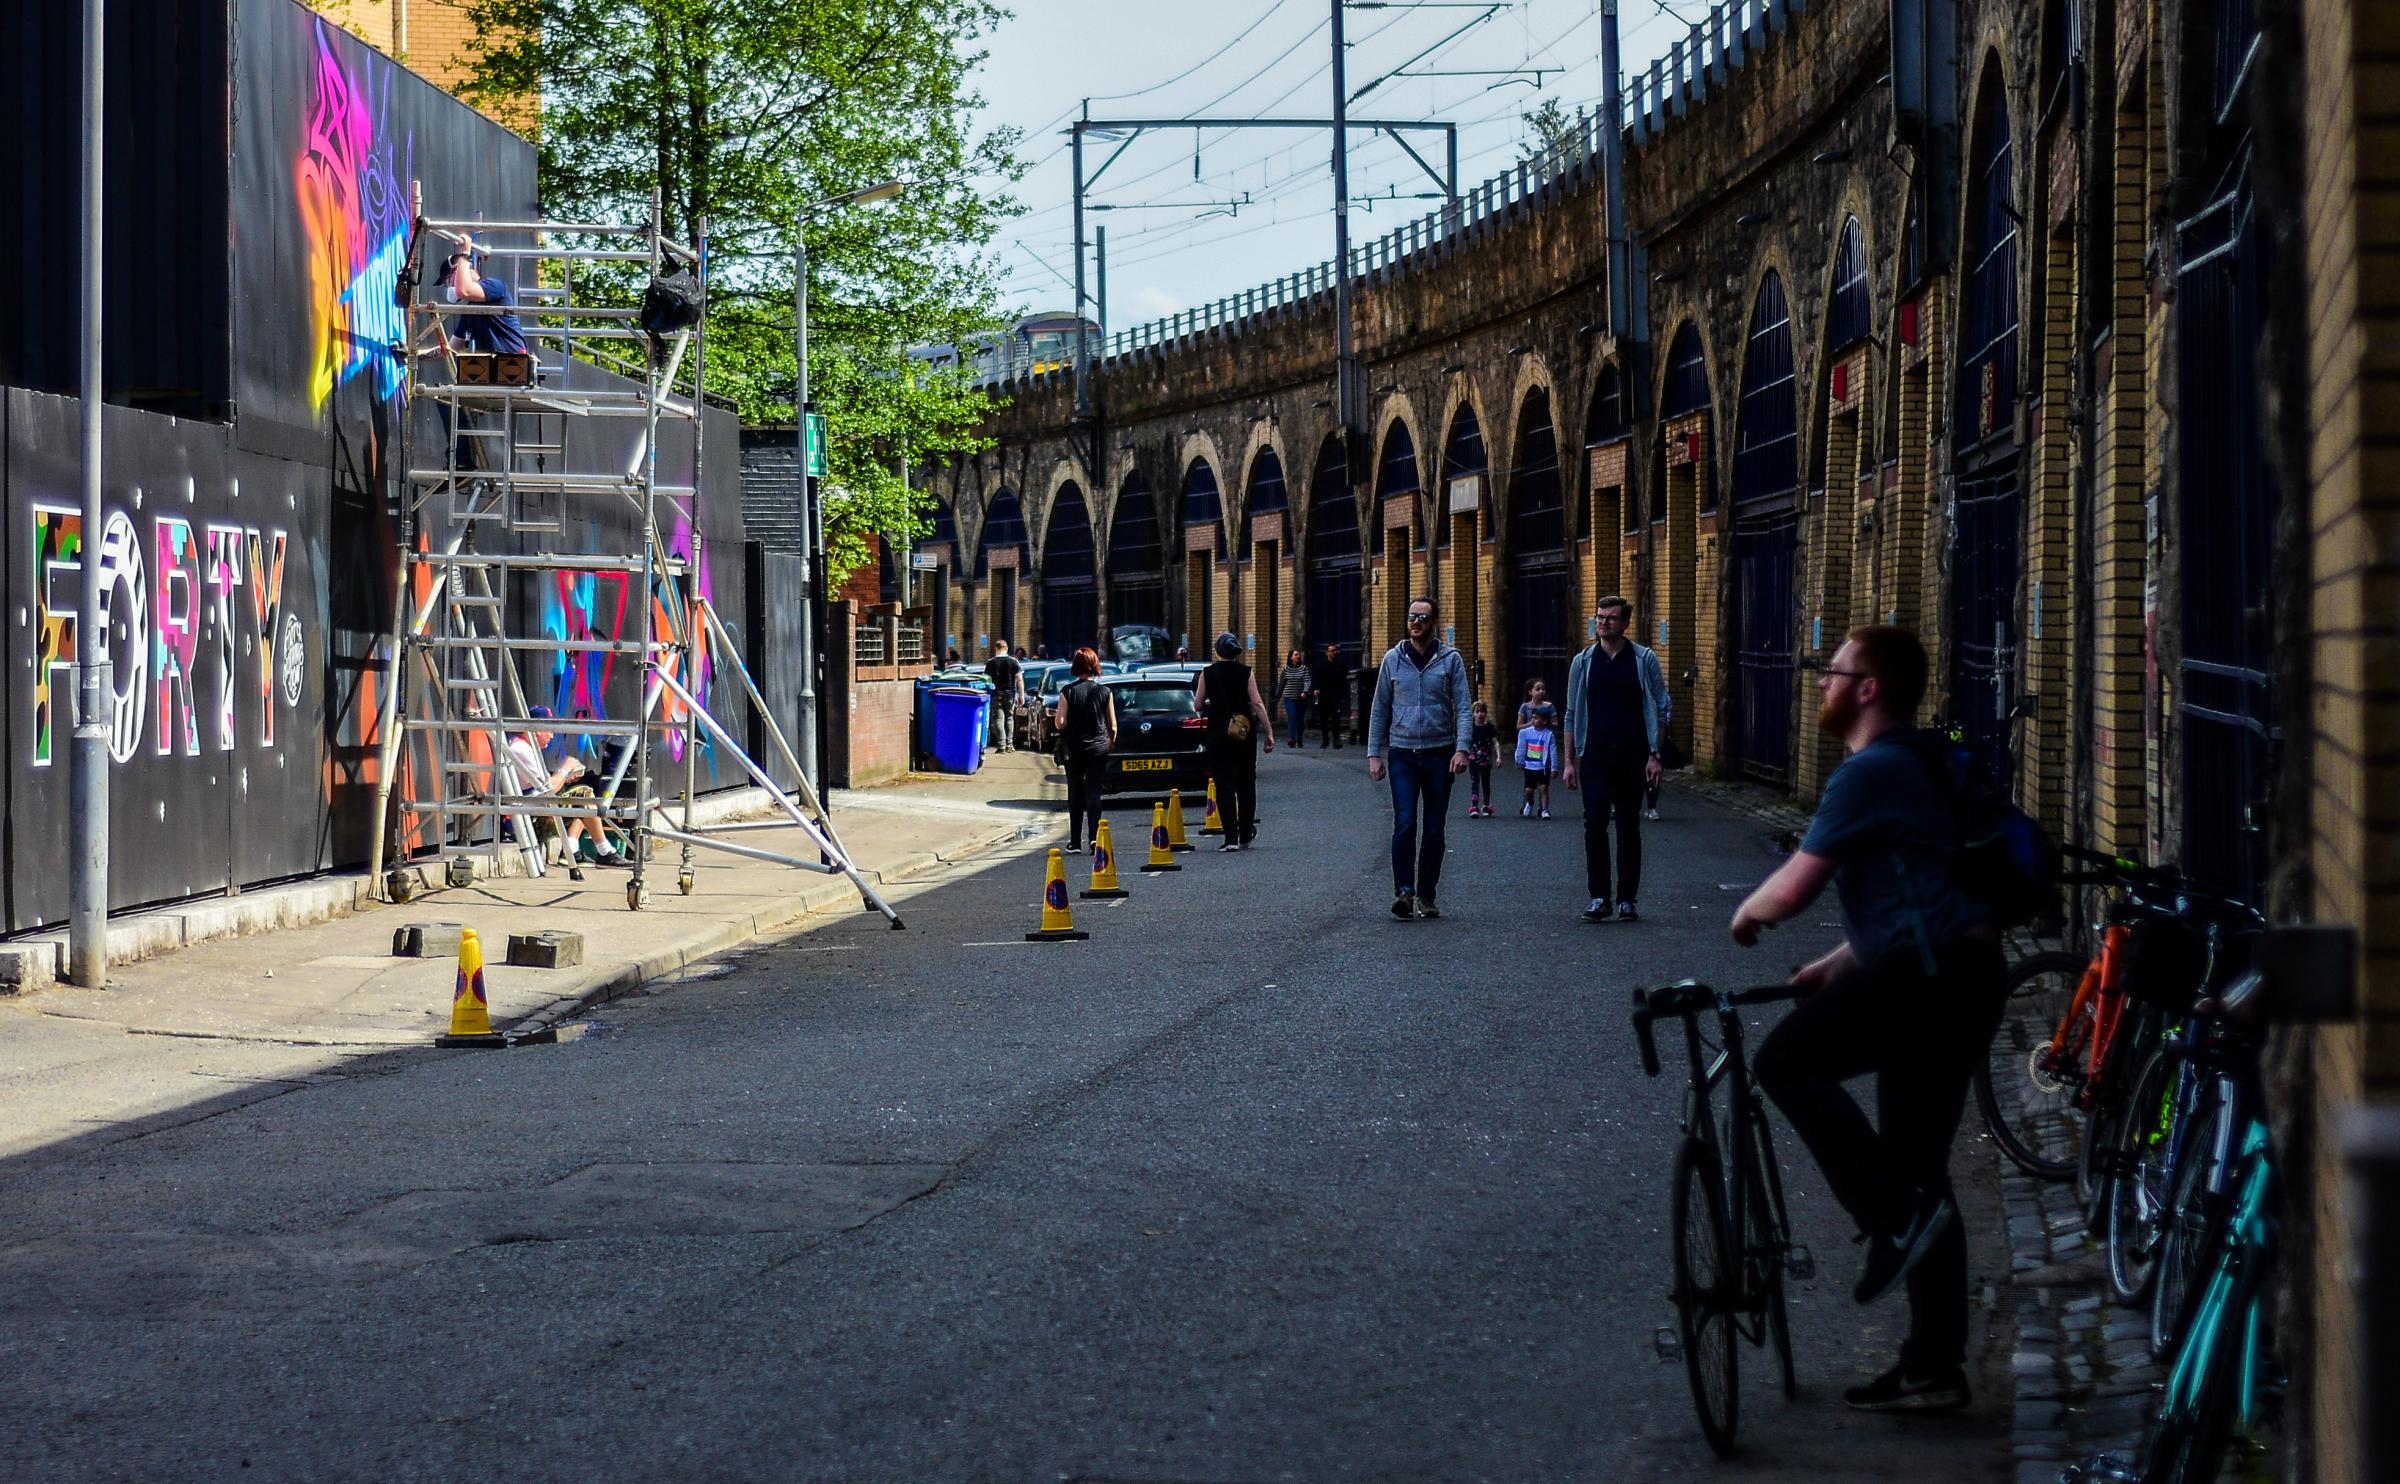 Yardworks graffiti festival coming to Glasgow this weekend